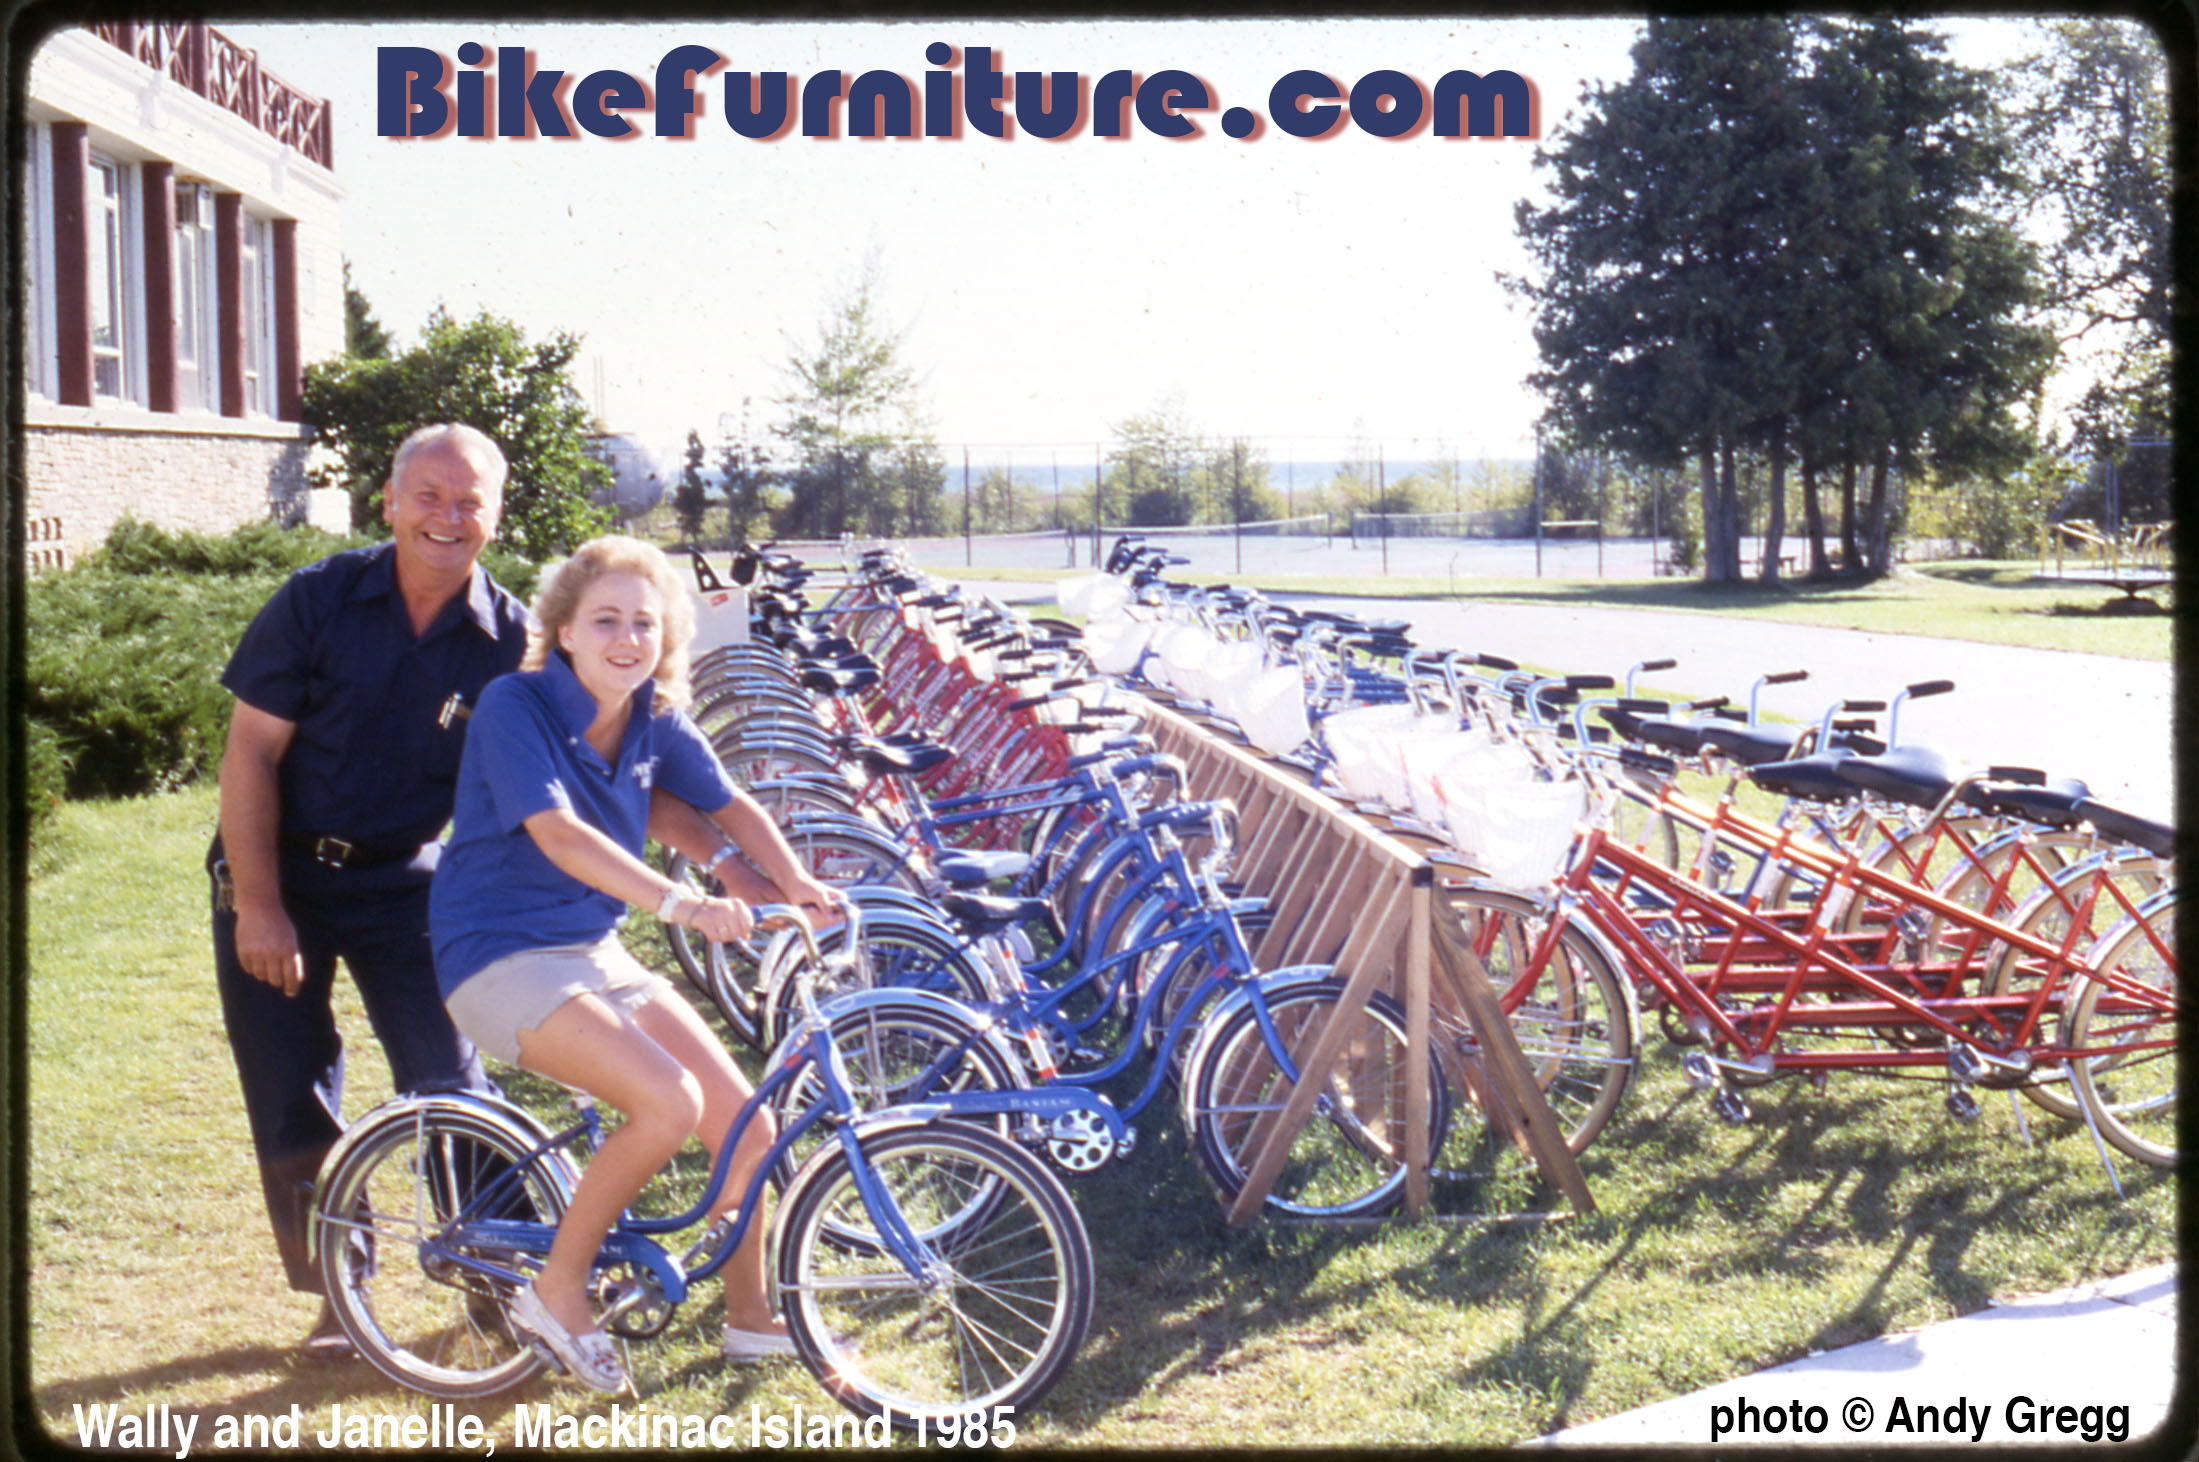 Wally and Janelle with a fleet of classic Schwinn rental bikes.  Summer 1985 - Island House (now Mission Point) Hotel - Mackinac Island, MI